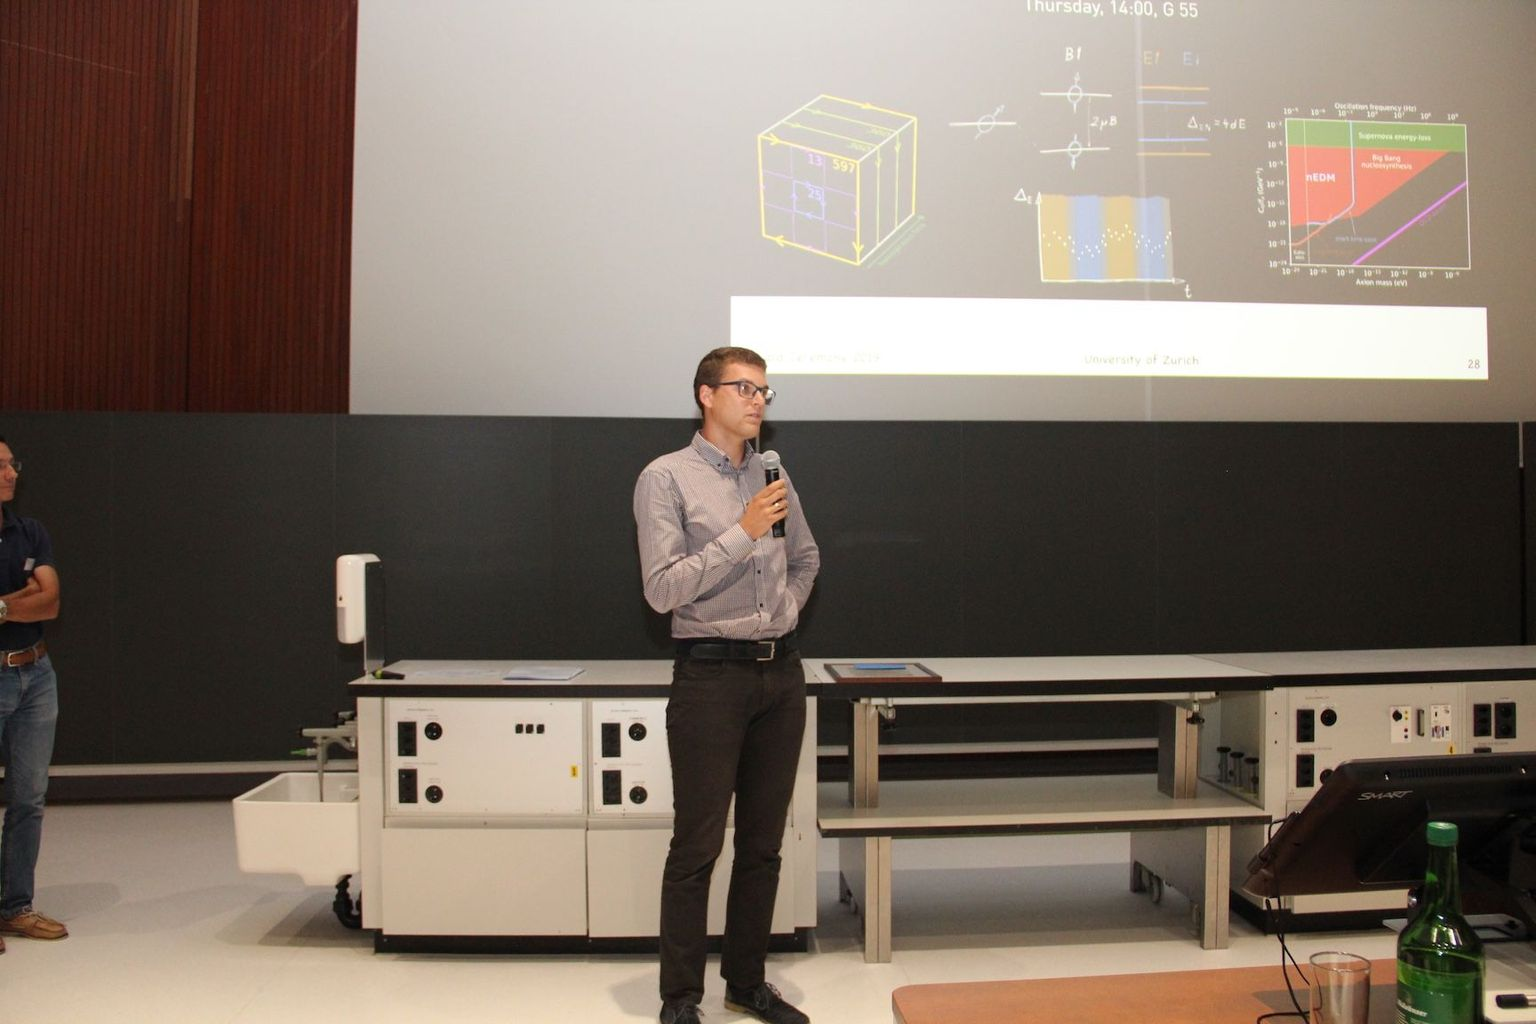 CHIPP Prize 2019 Michal Rawlik at the SPS/OPG joint meeting at the University of Zurich